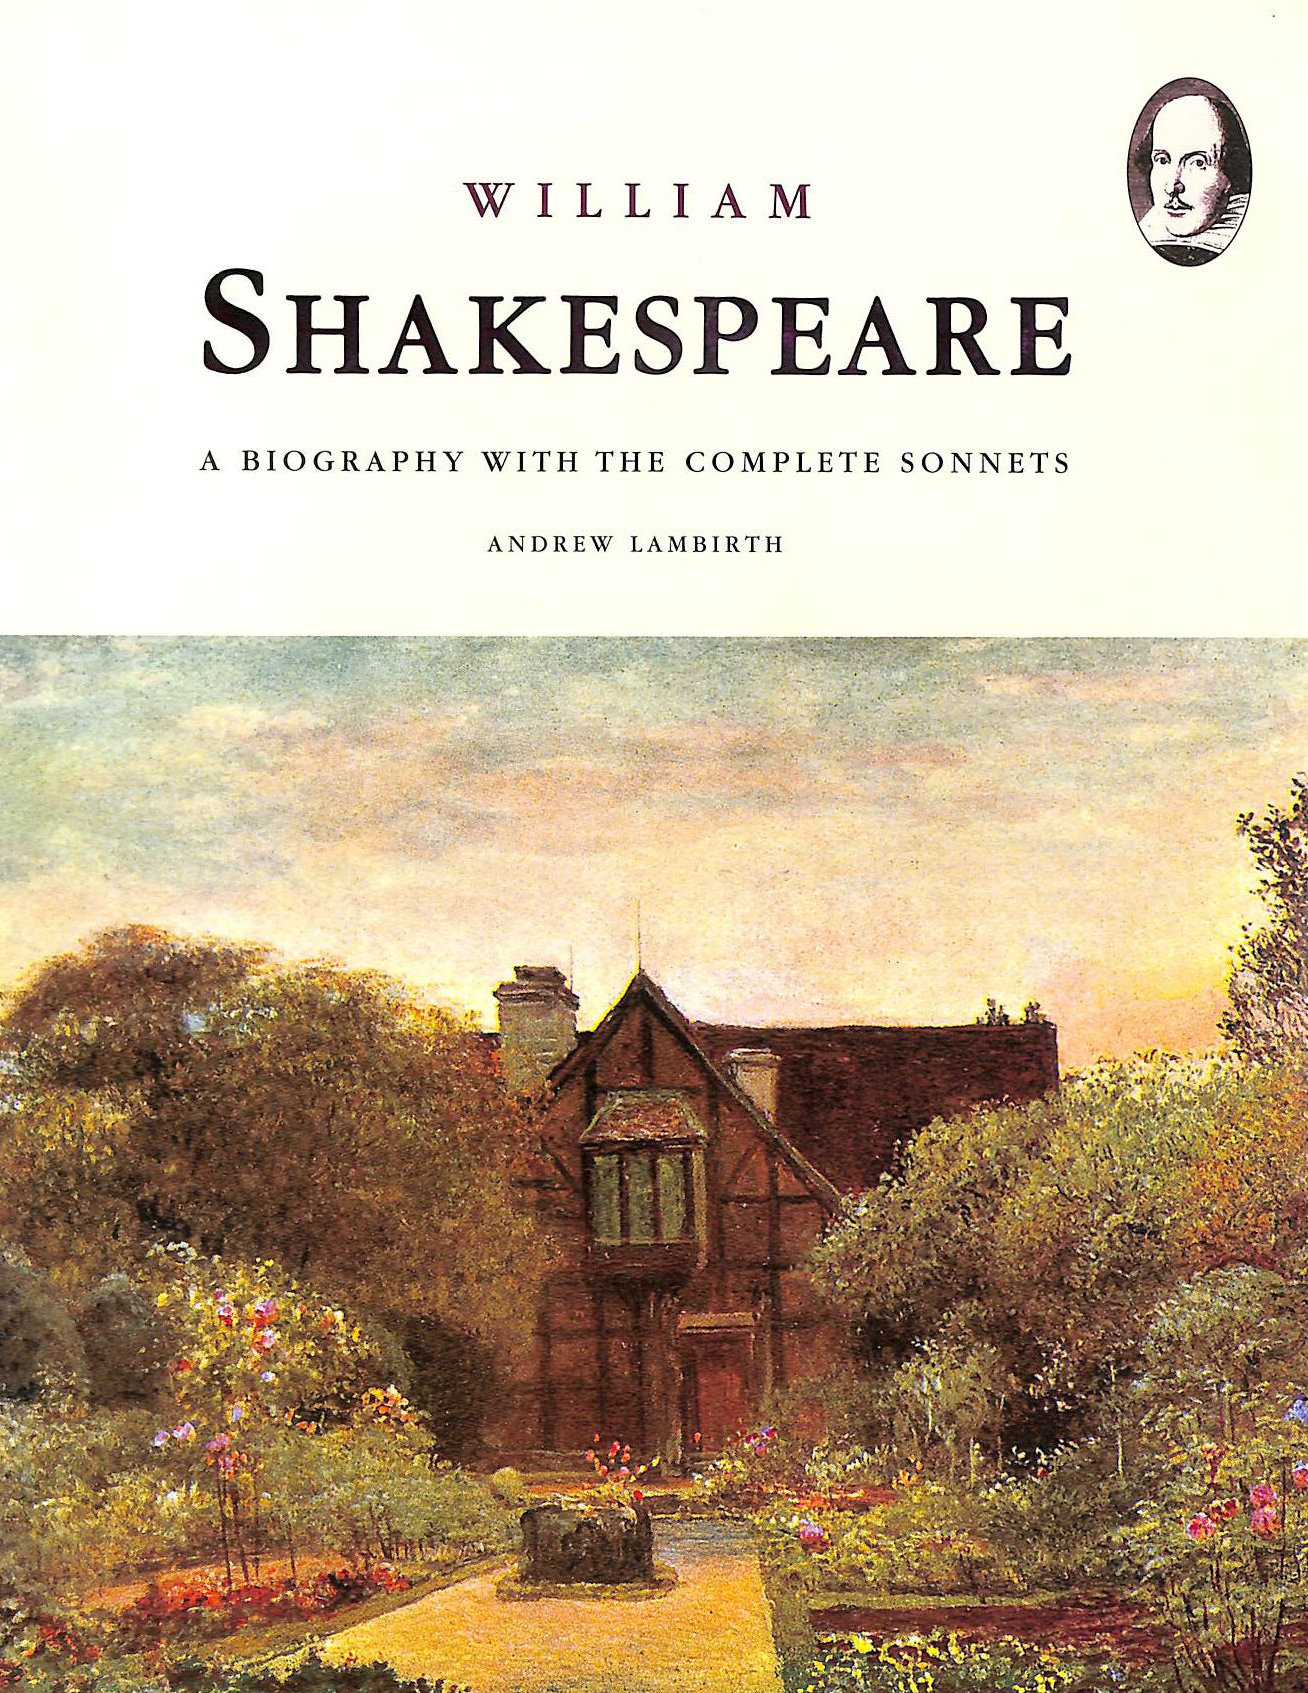 Image for William Shakespeare: A Biography with the Complete Sonnets